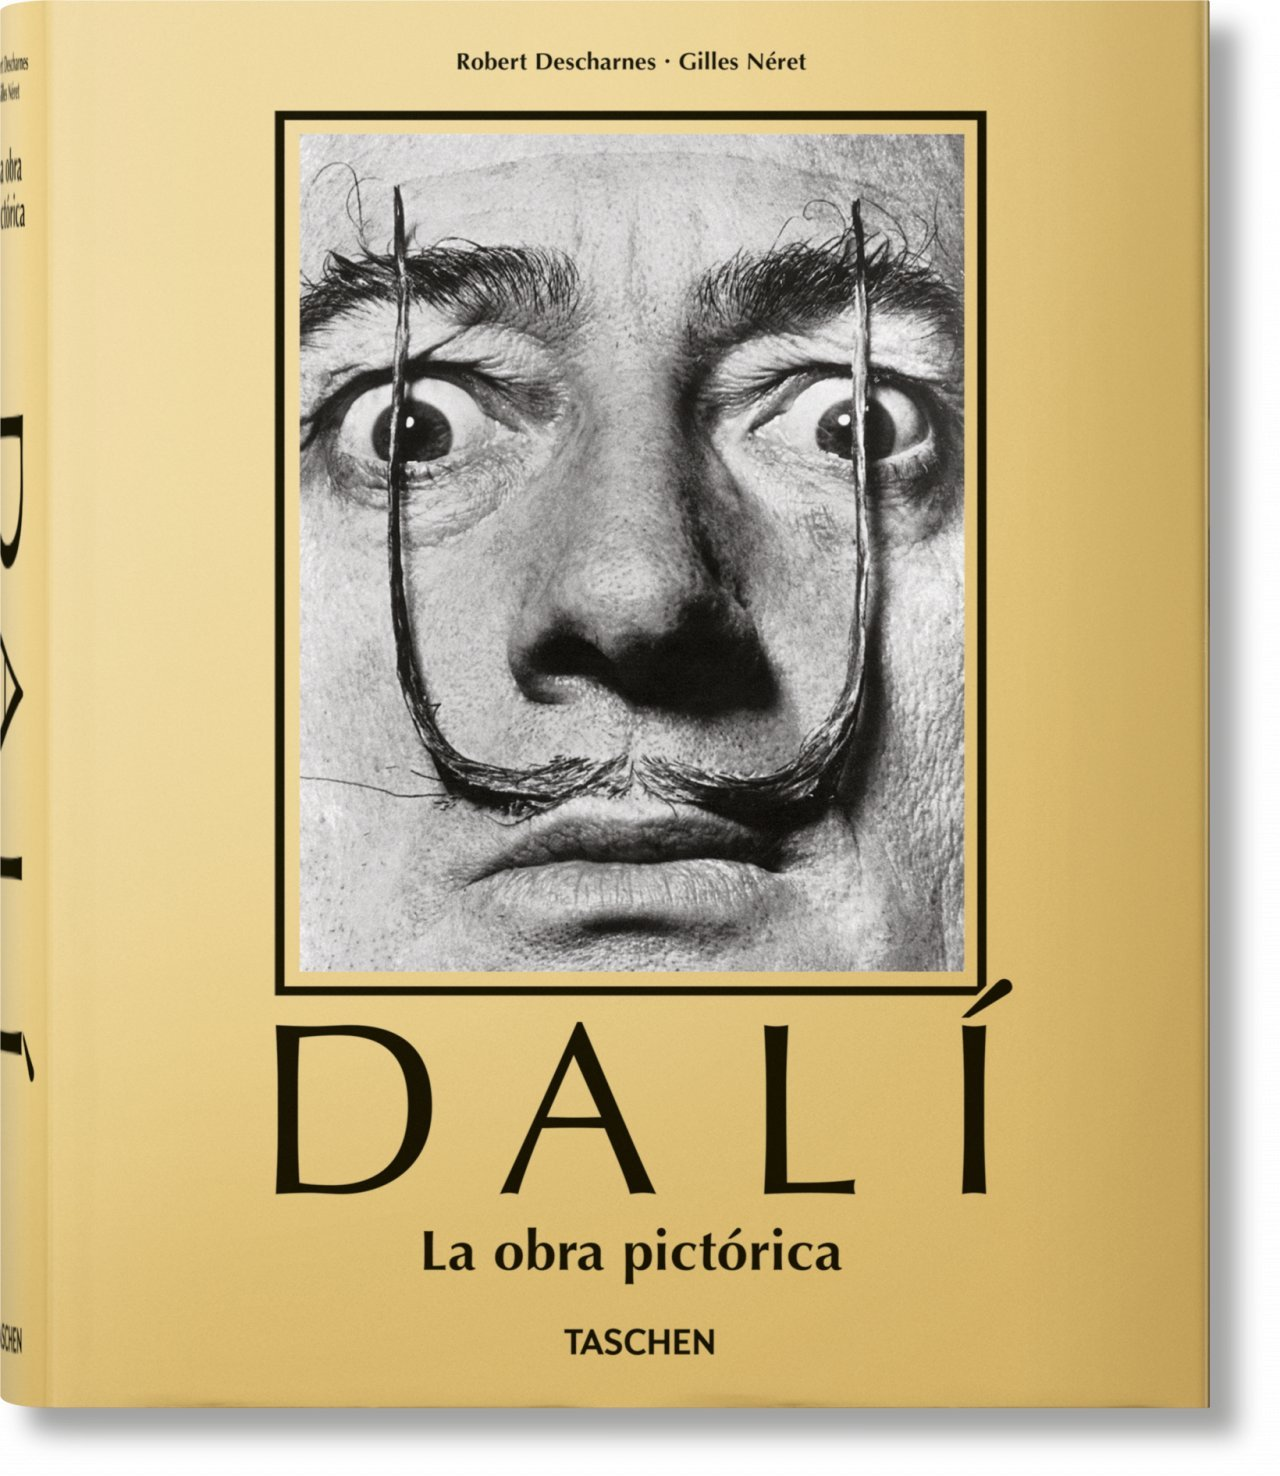 Dalí - Descharnes Robert